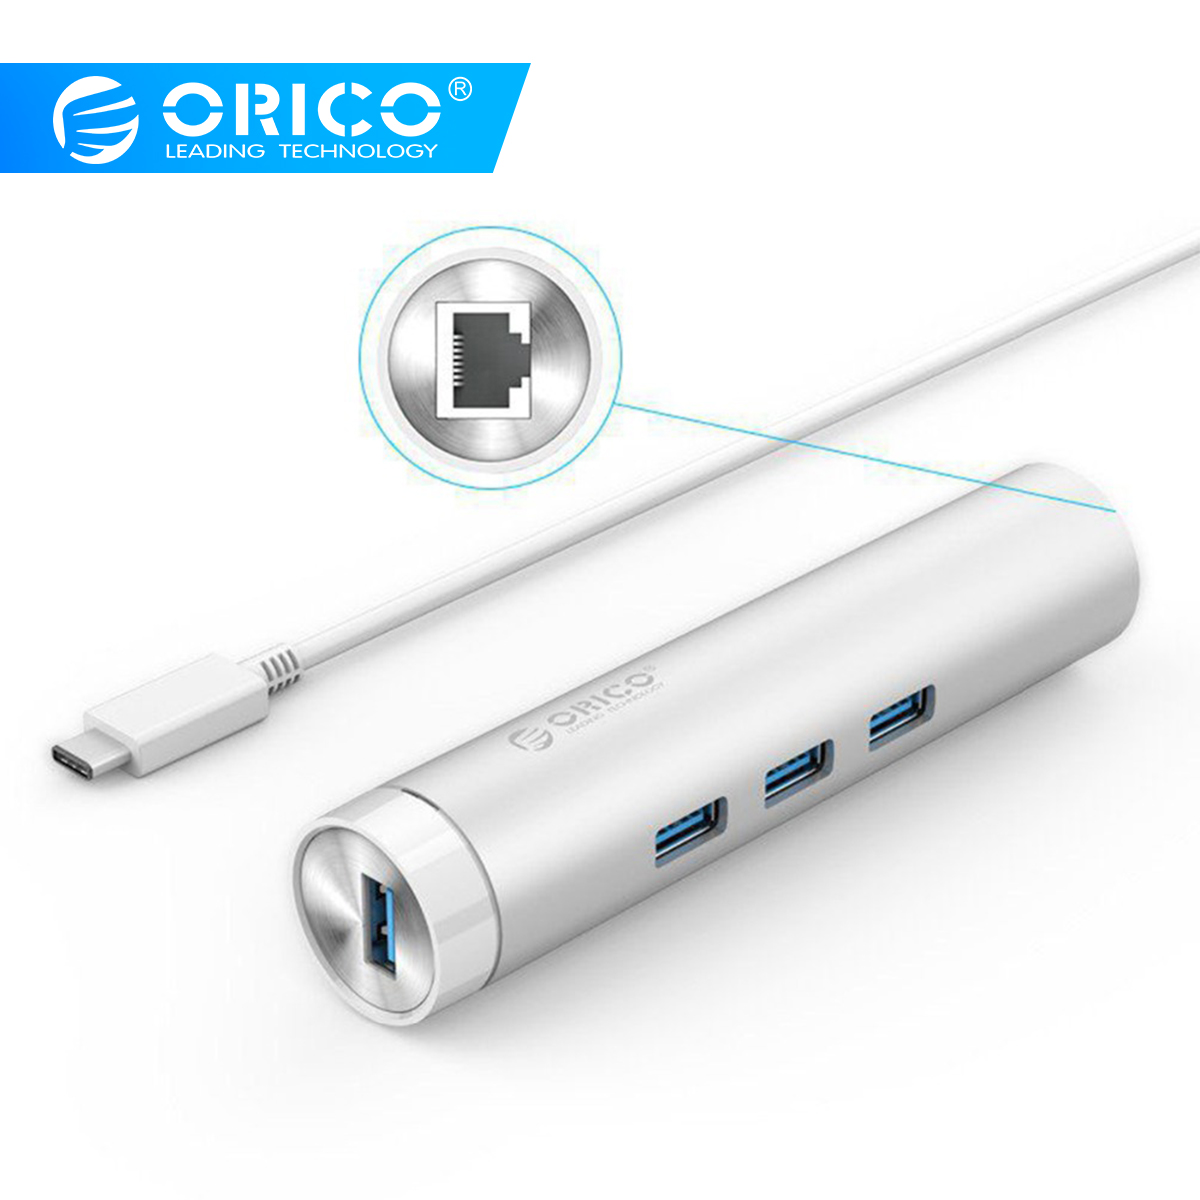 ORICO Cylindrical Aluminum USB3.0 HUB USB C To Ethernet Network Adapter 1000 Mbps RJ45 Splitter For Macbook Samsung Huawei P20